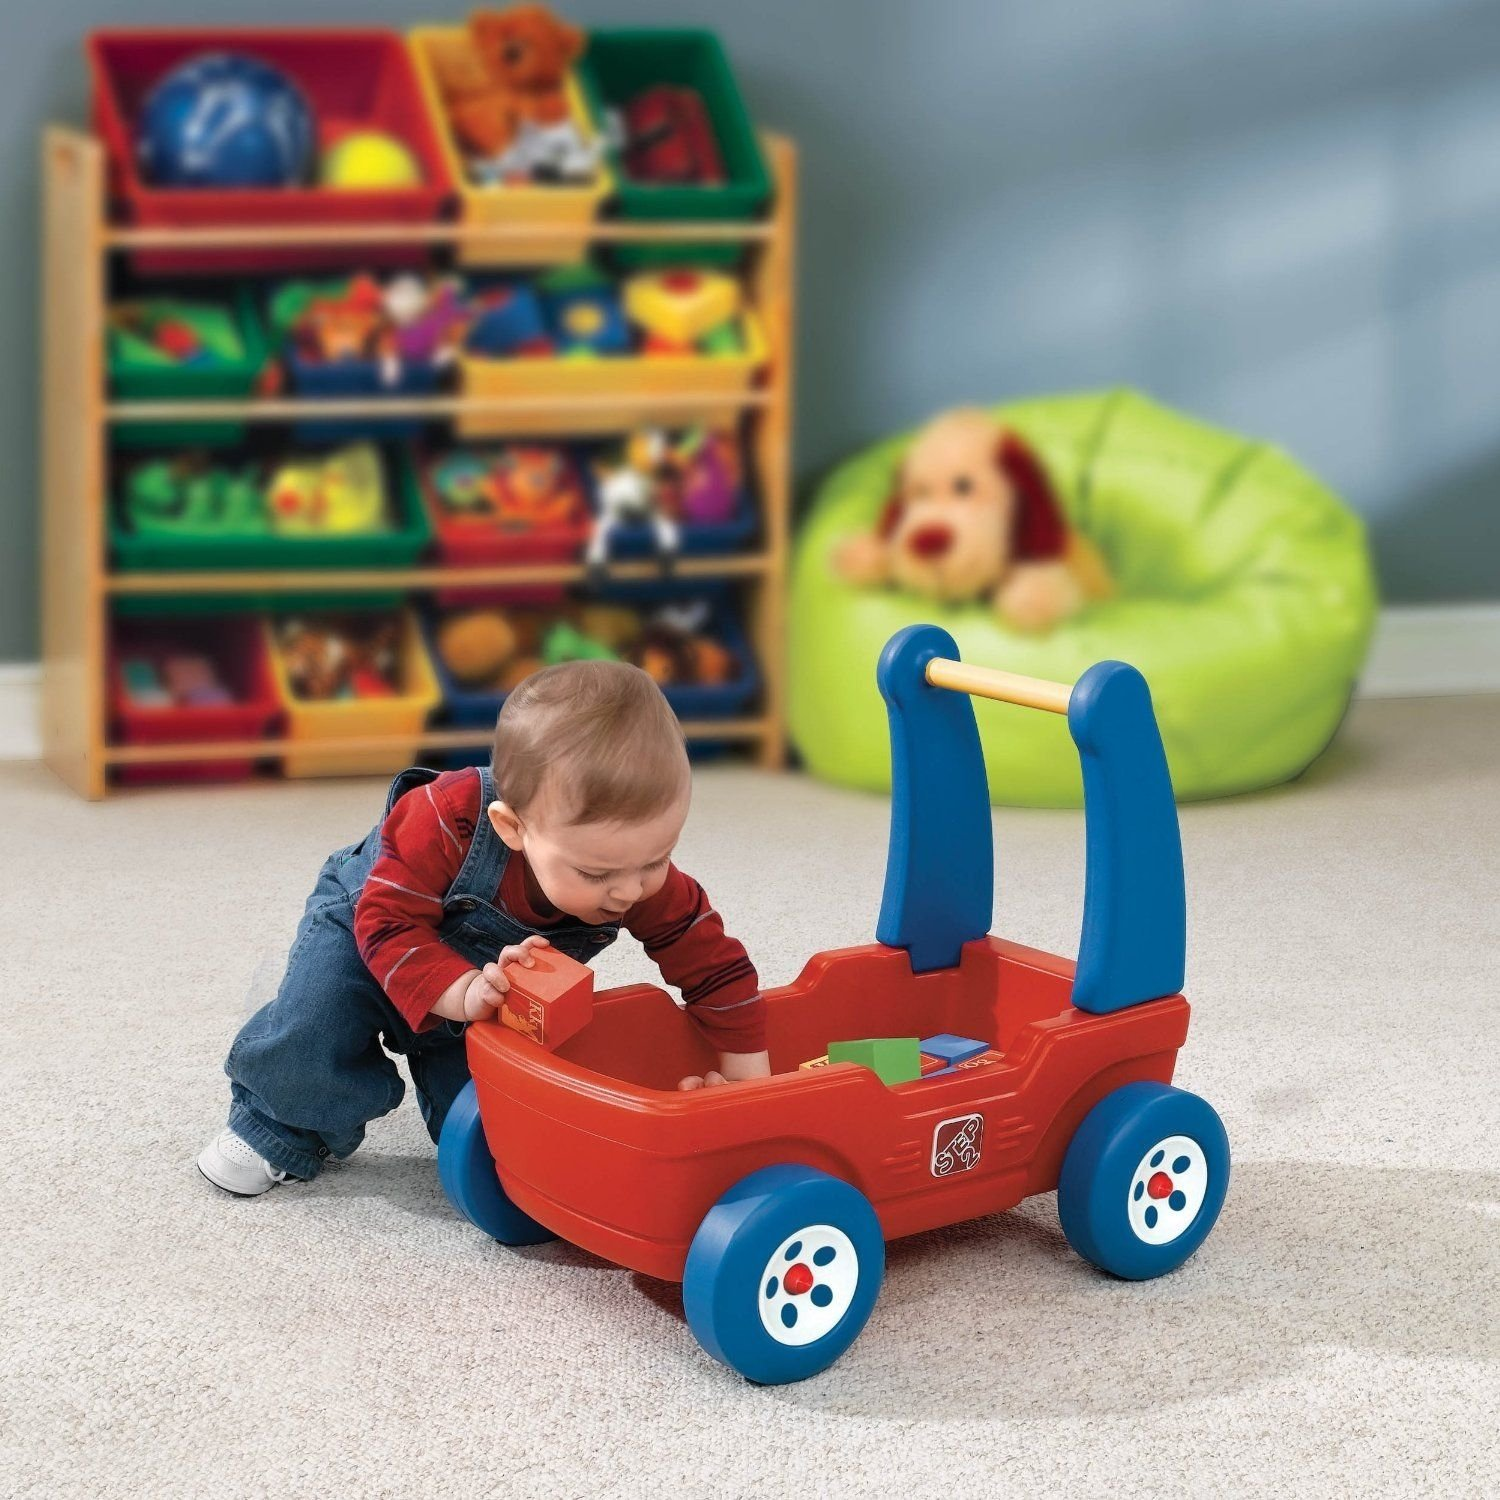 10 Fashionable Birthday Gift Ideas For 1 Year Old Boy best rated budget friendly gift ideas for one year old boys first 4 2020